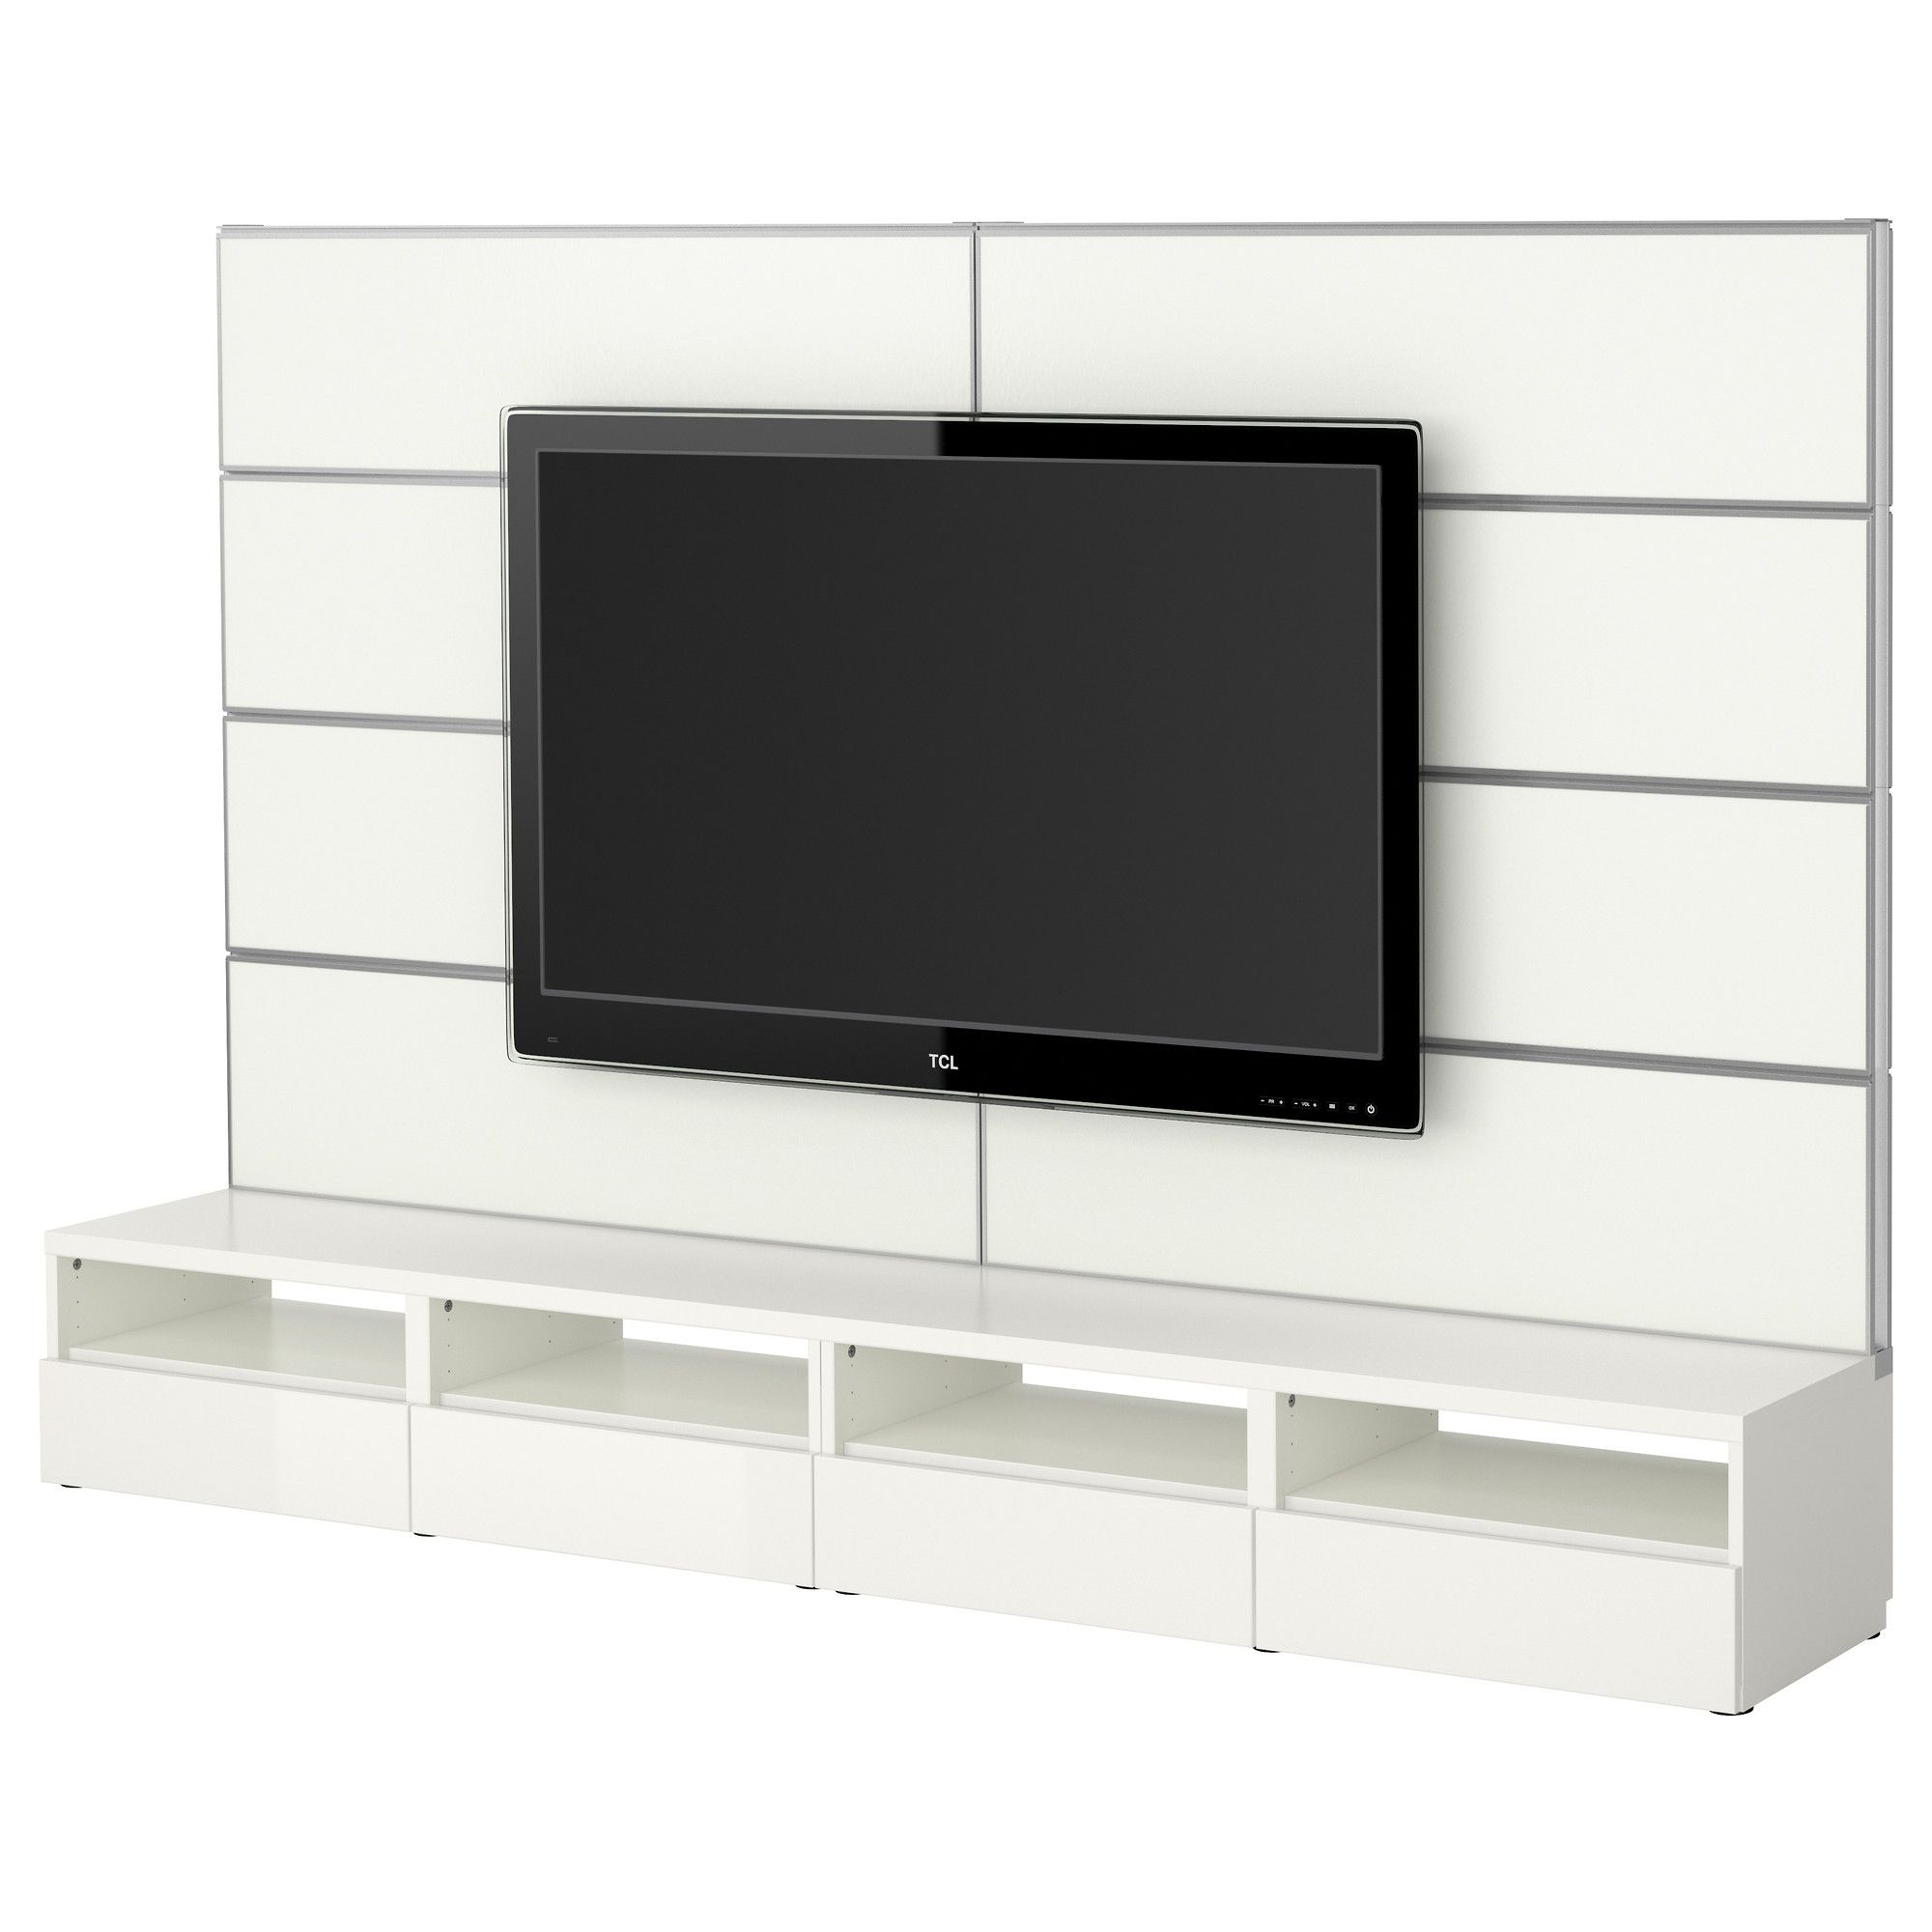 Support De Tele Ikea - Best Framst Tv Storage Combination White Ikea Apt [mjhdah]https://s-media-cache-ak0.pinimg.com/originals/10/0c/50/100c504978a01597e6858d2510401ea6.jpg